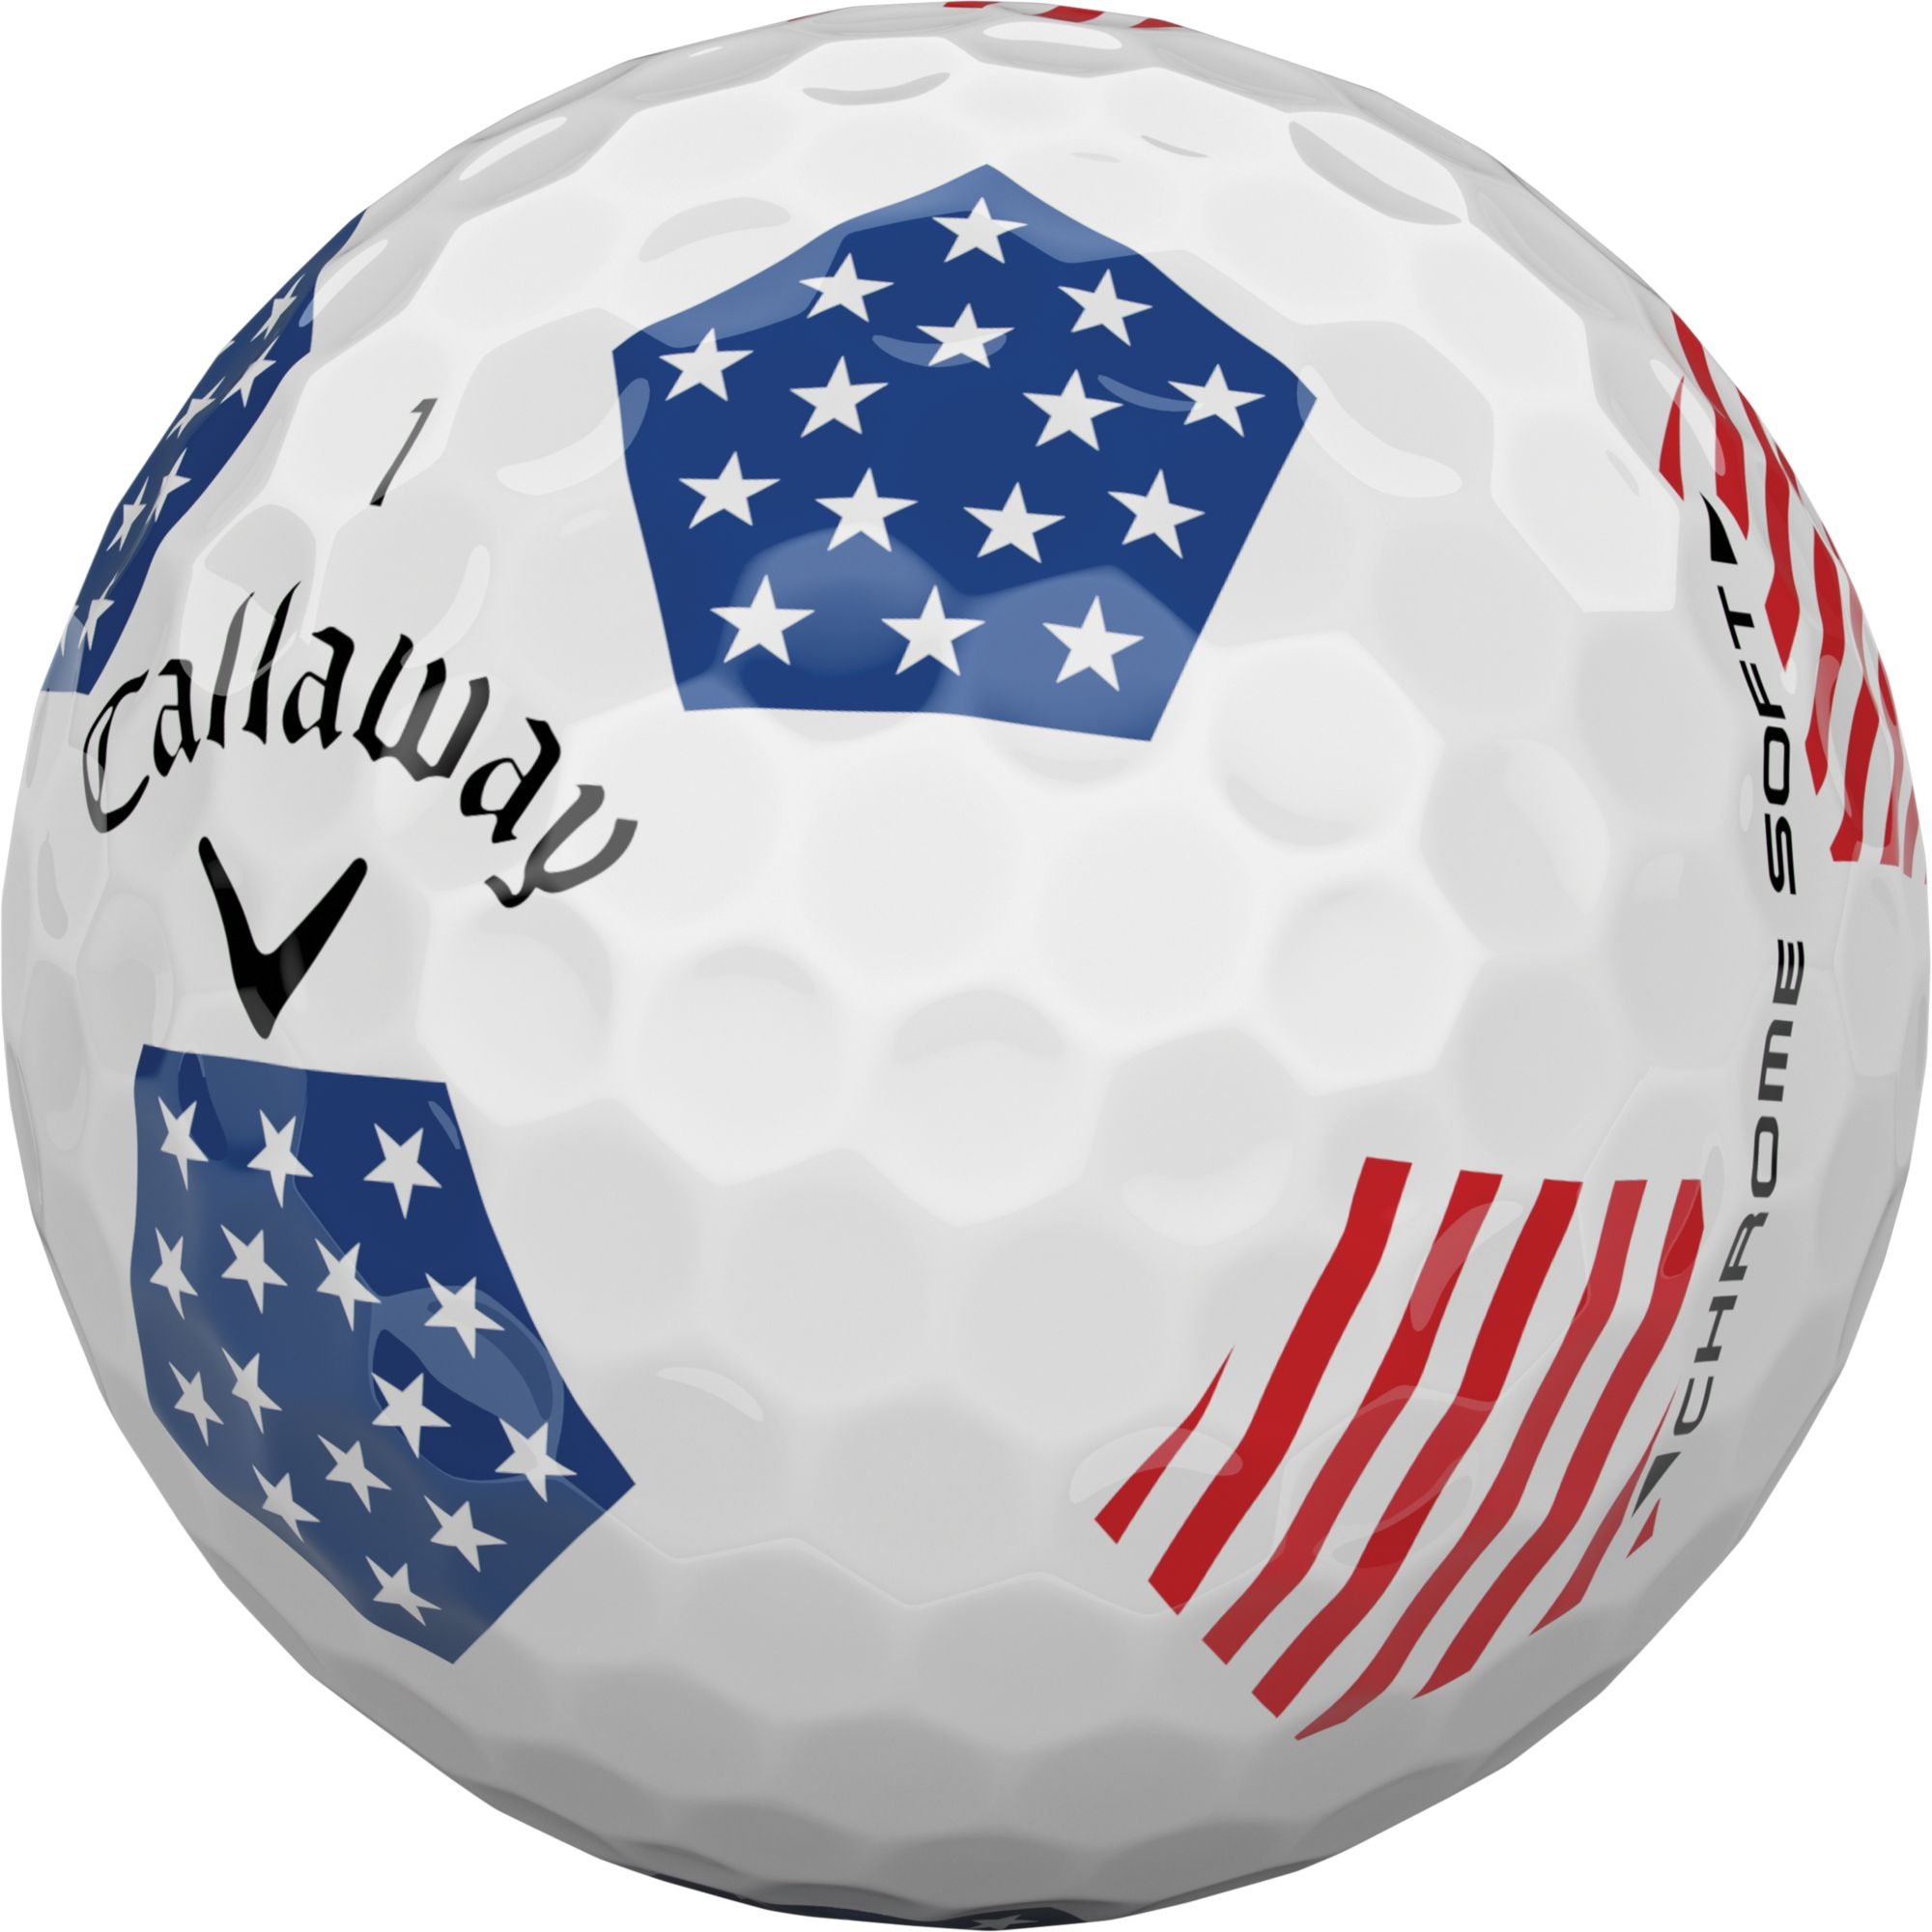 callaway 2018 chrome soft truvis stars and stripes golf. Black Bedroom Furniture Sets. Home Design Ideas